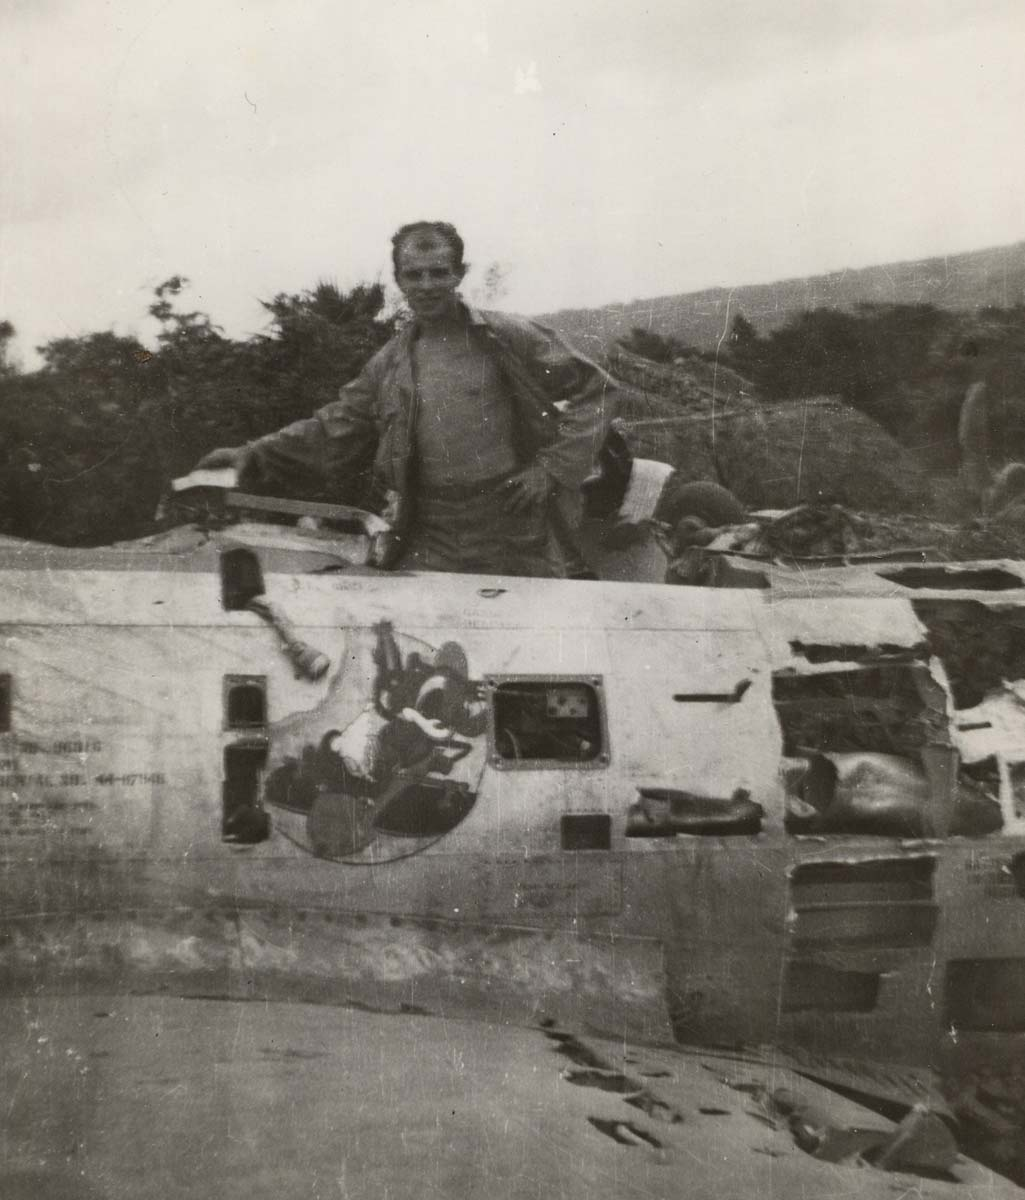 World War II 2 vetern Andrew Selep in damaged plane Okinawa 1945